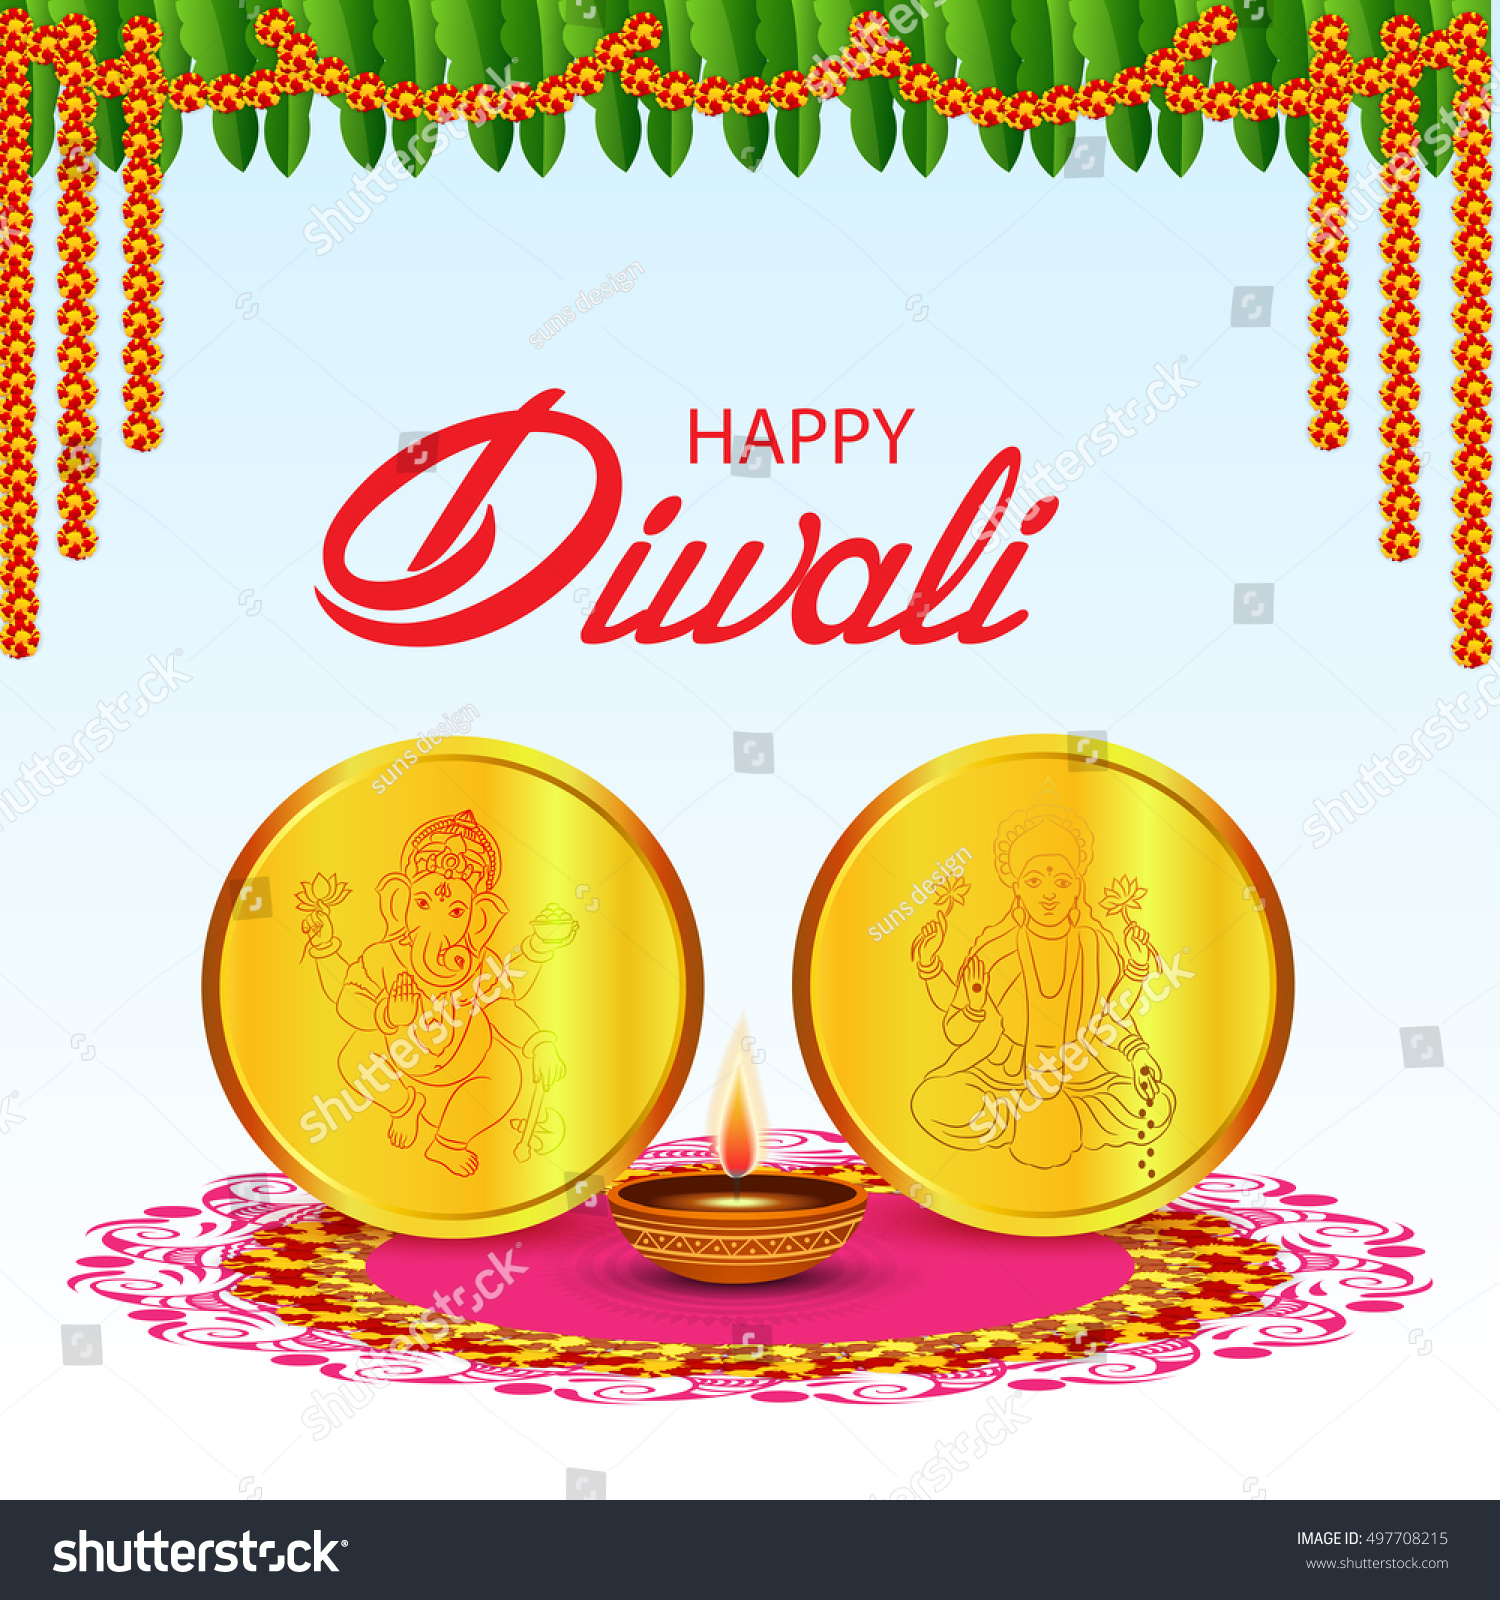 Vector illustration of a banner or poster for festival of diwali celebration background